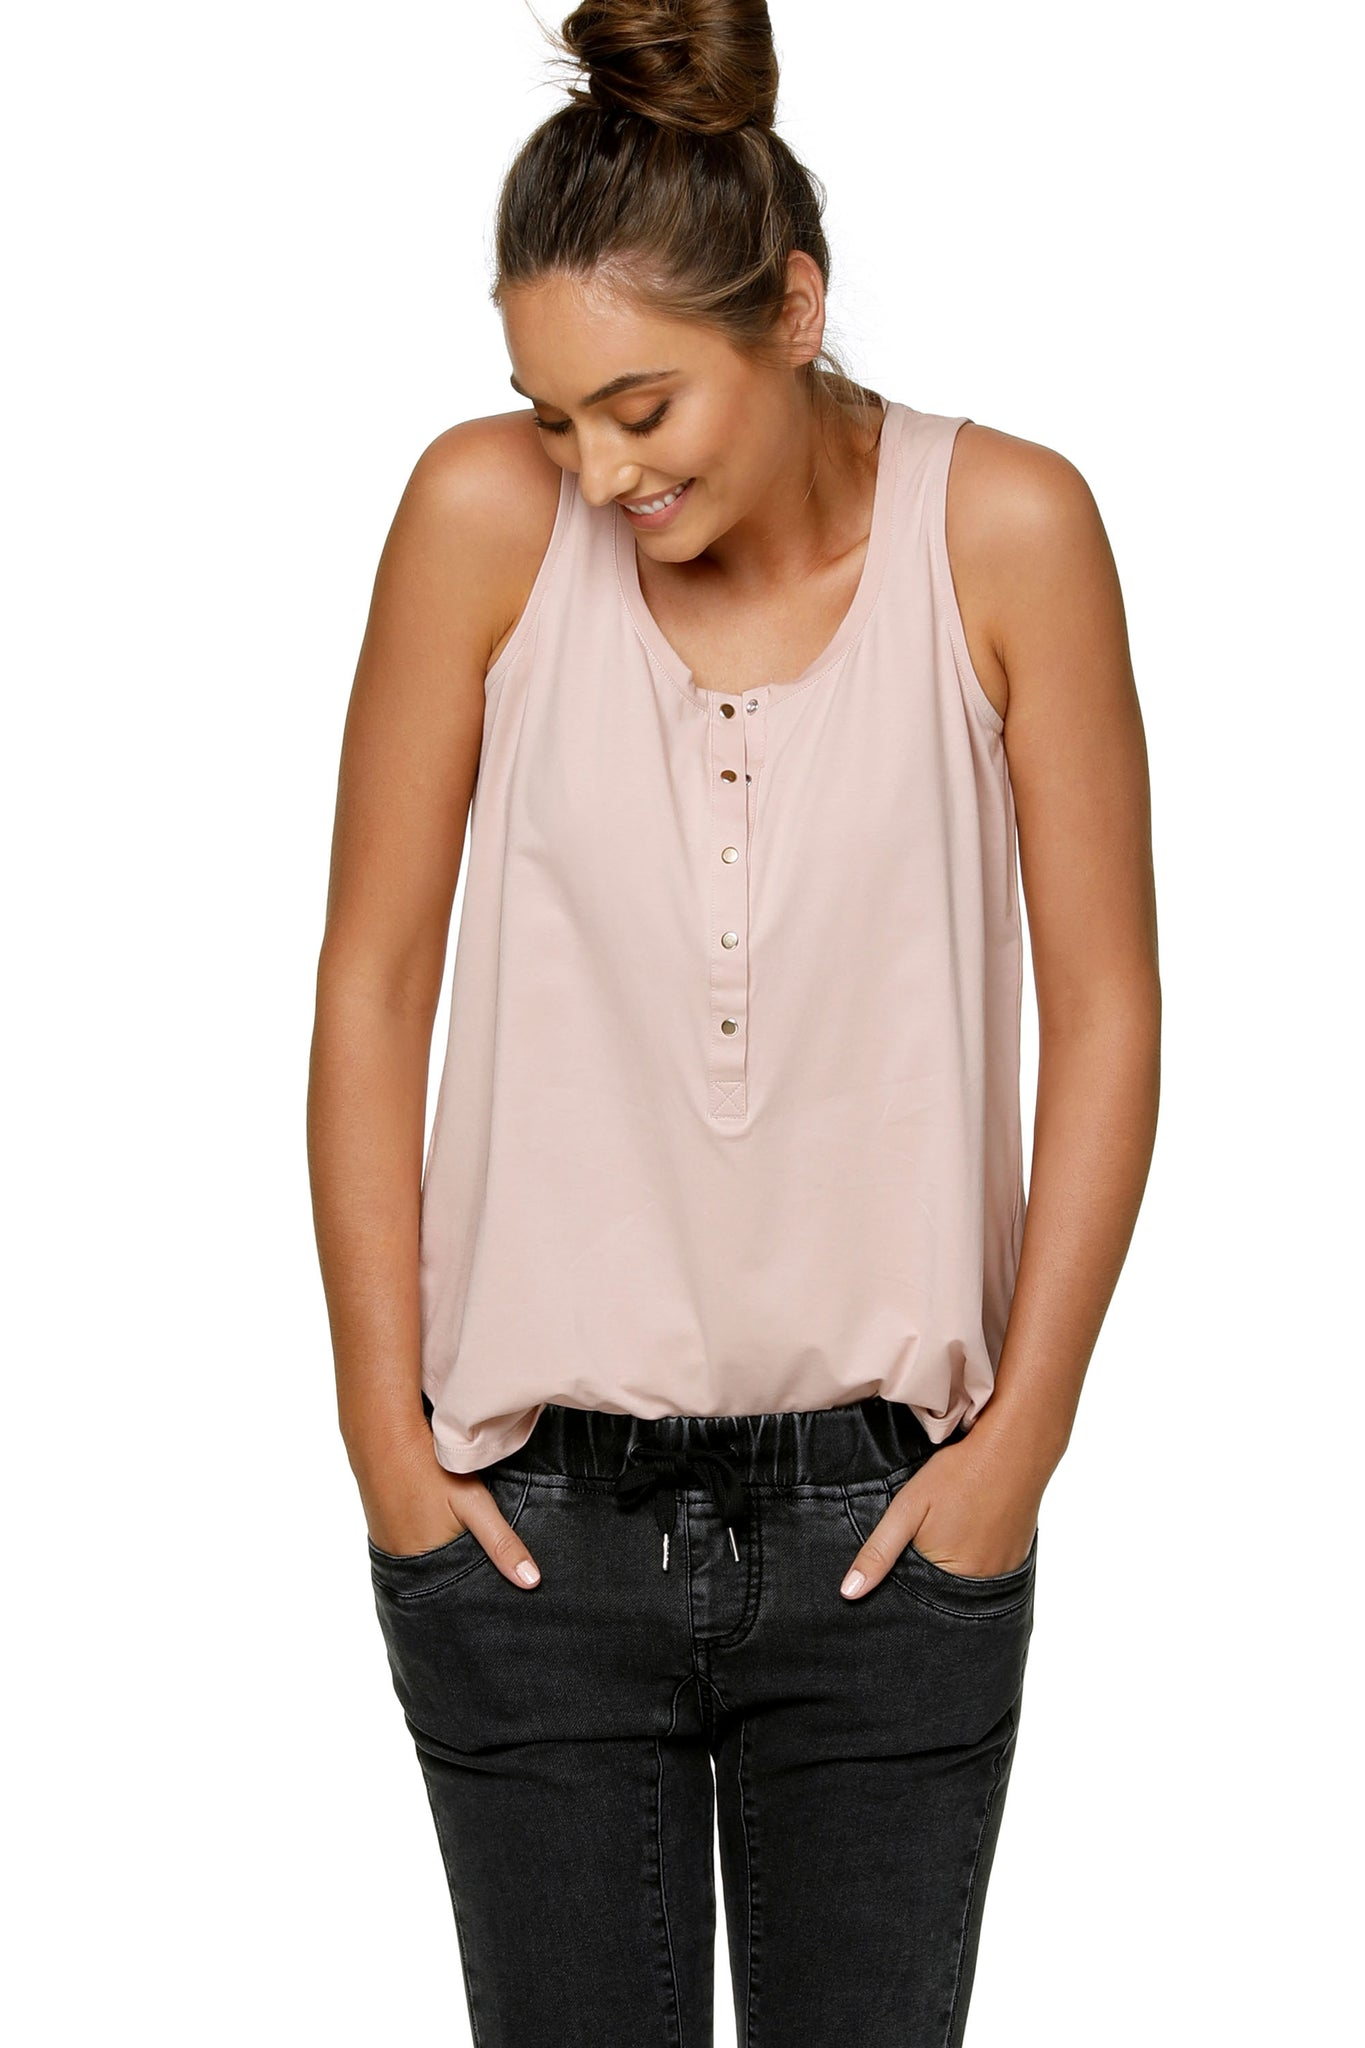 Maternity + Nursing Tank Top - Pink 9